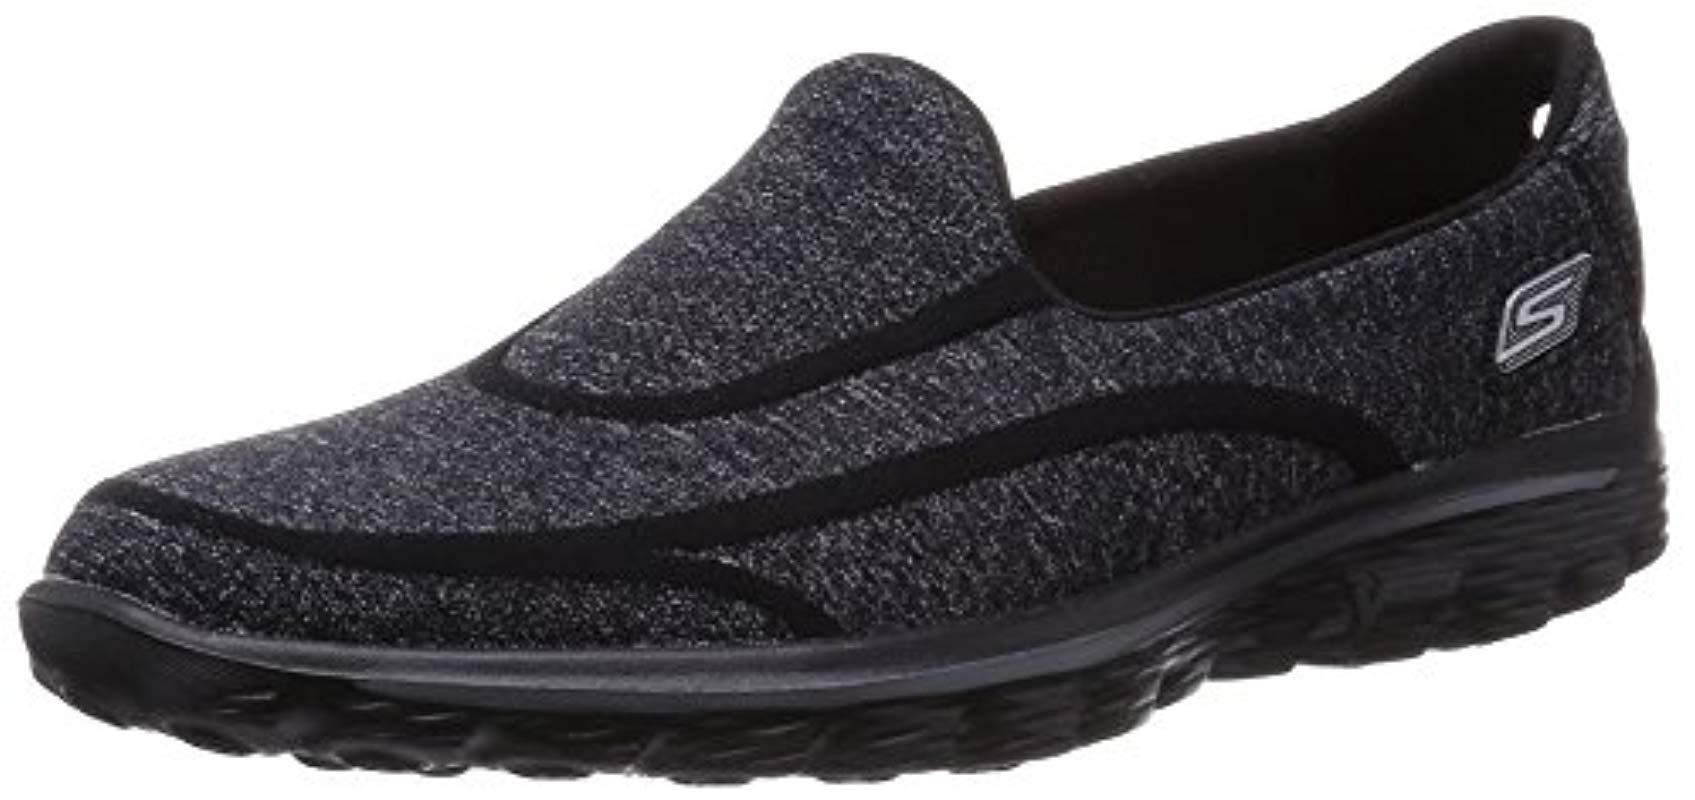 Skechers. Women's Black 's Gowalk 2 Super Sock Low-top Sneakers